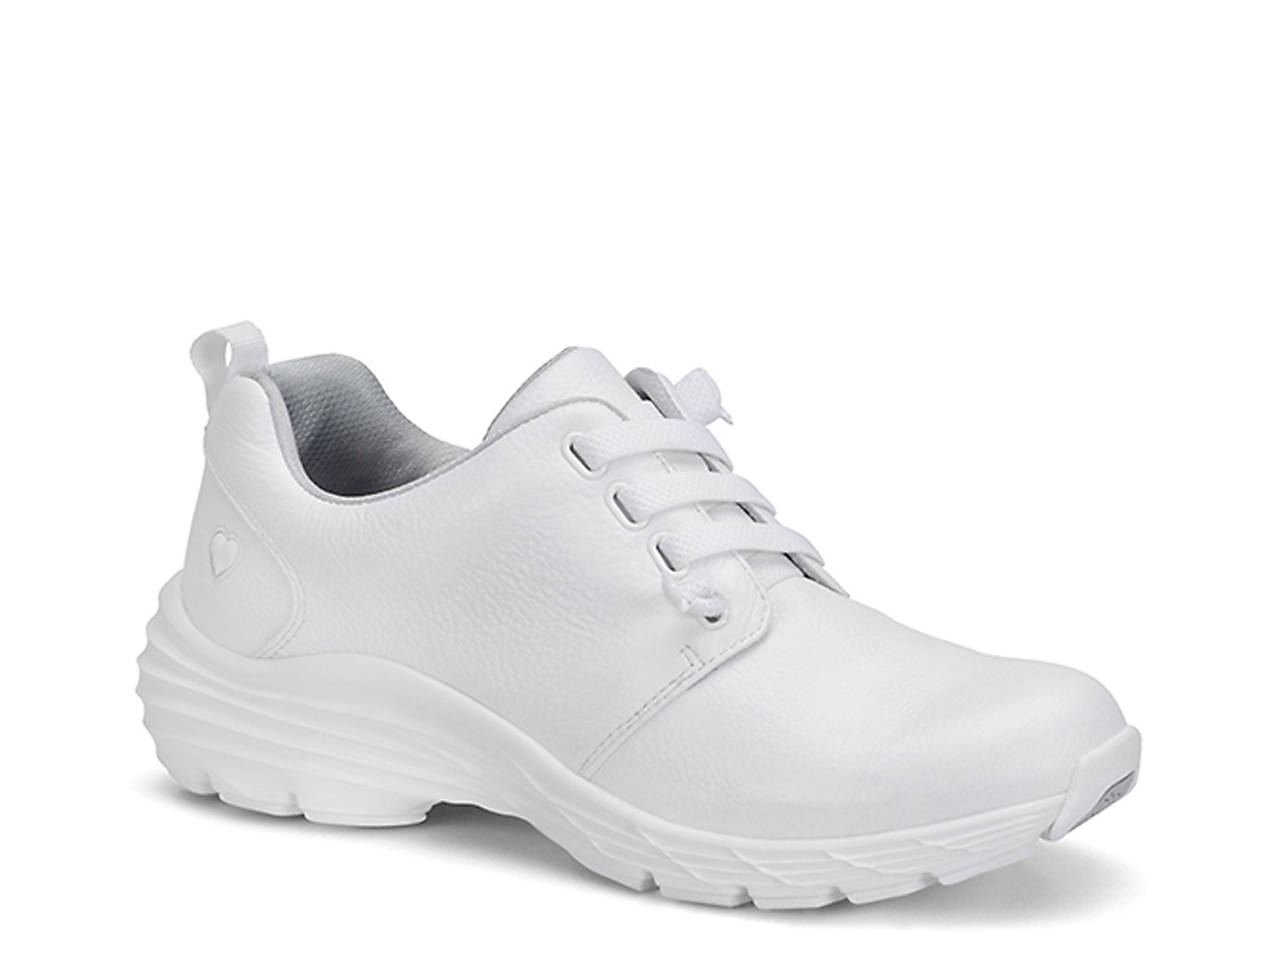 89167788ded4 Nurse Mates Velocity Work Sneaker Women s Shoes